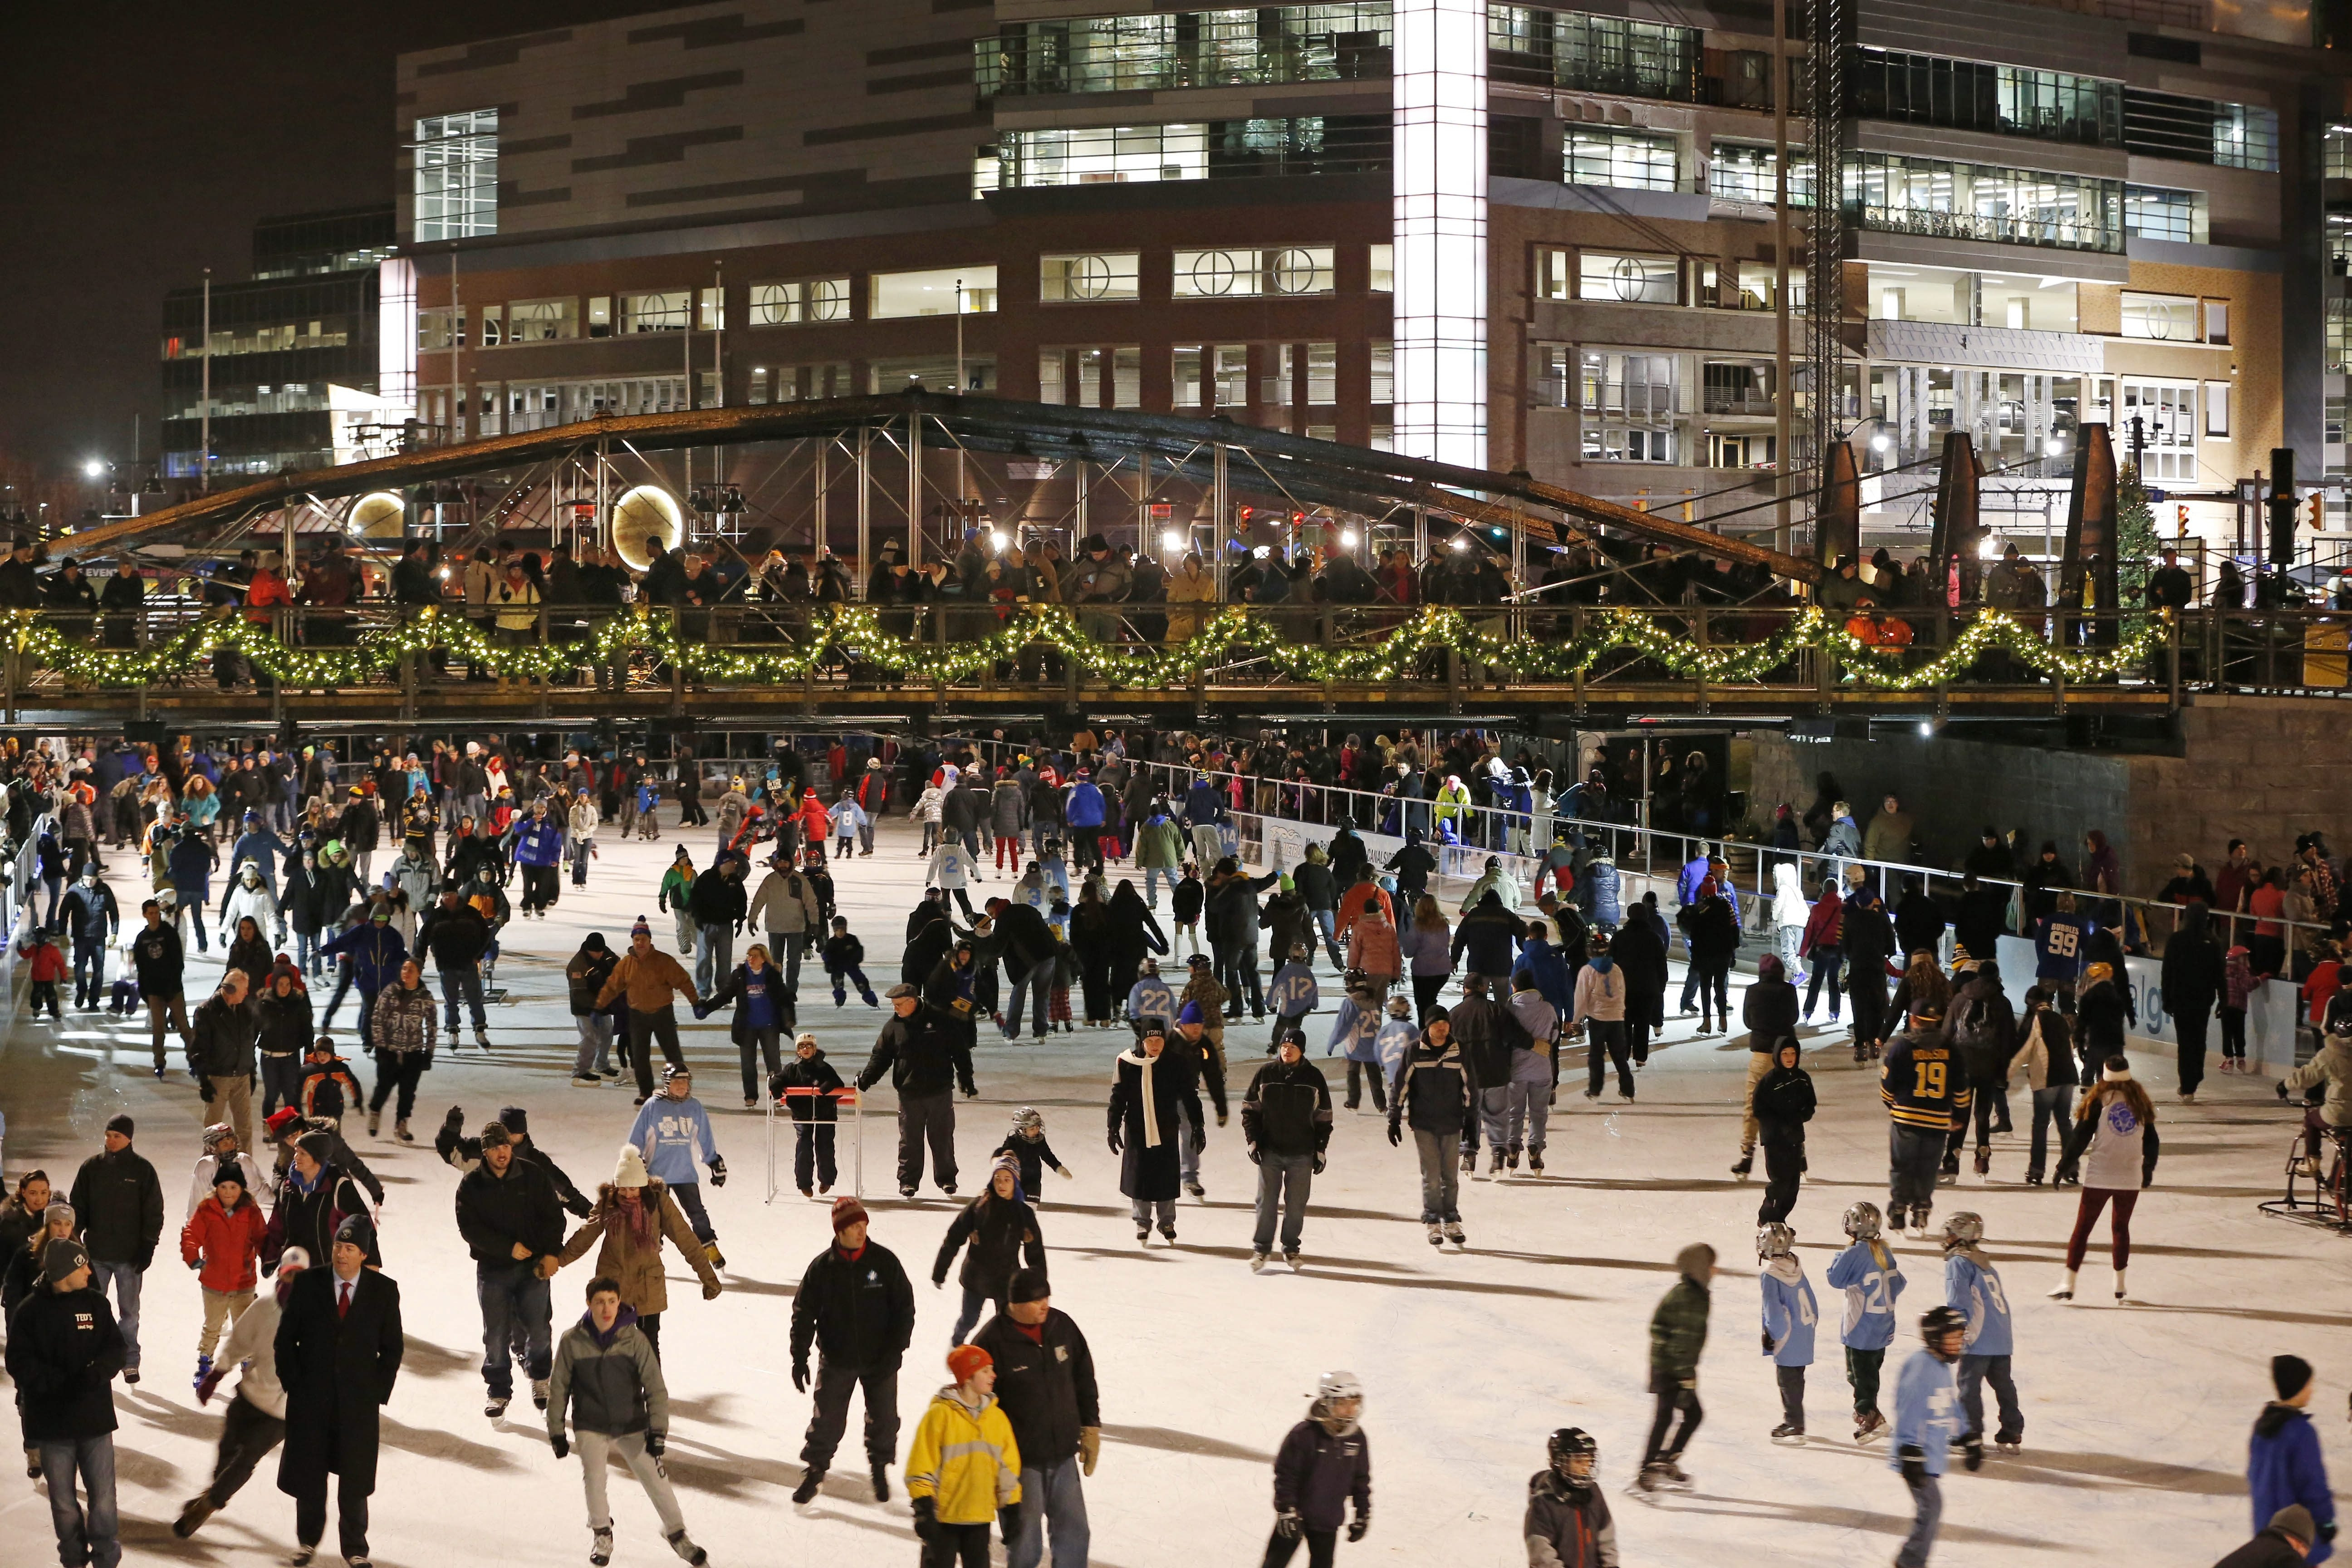 Skate, visit Santa and watch a tree lighting on Dec. 4 at The Ice at Canalside. (Derek Gee/Buffalo News file photo)